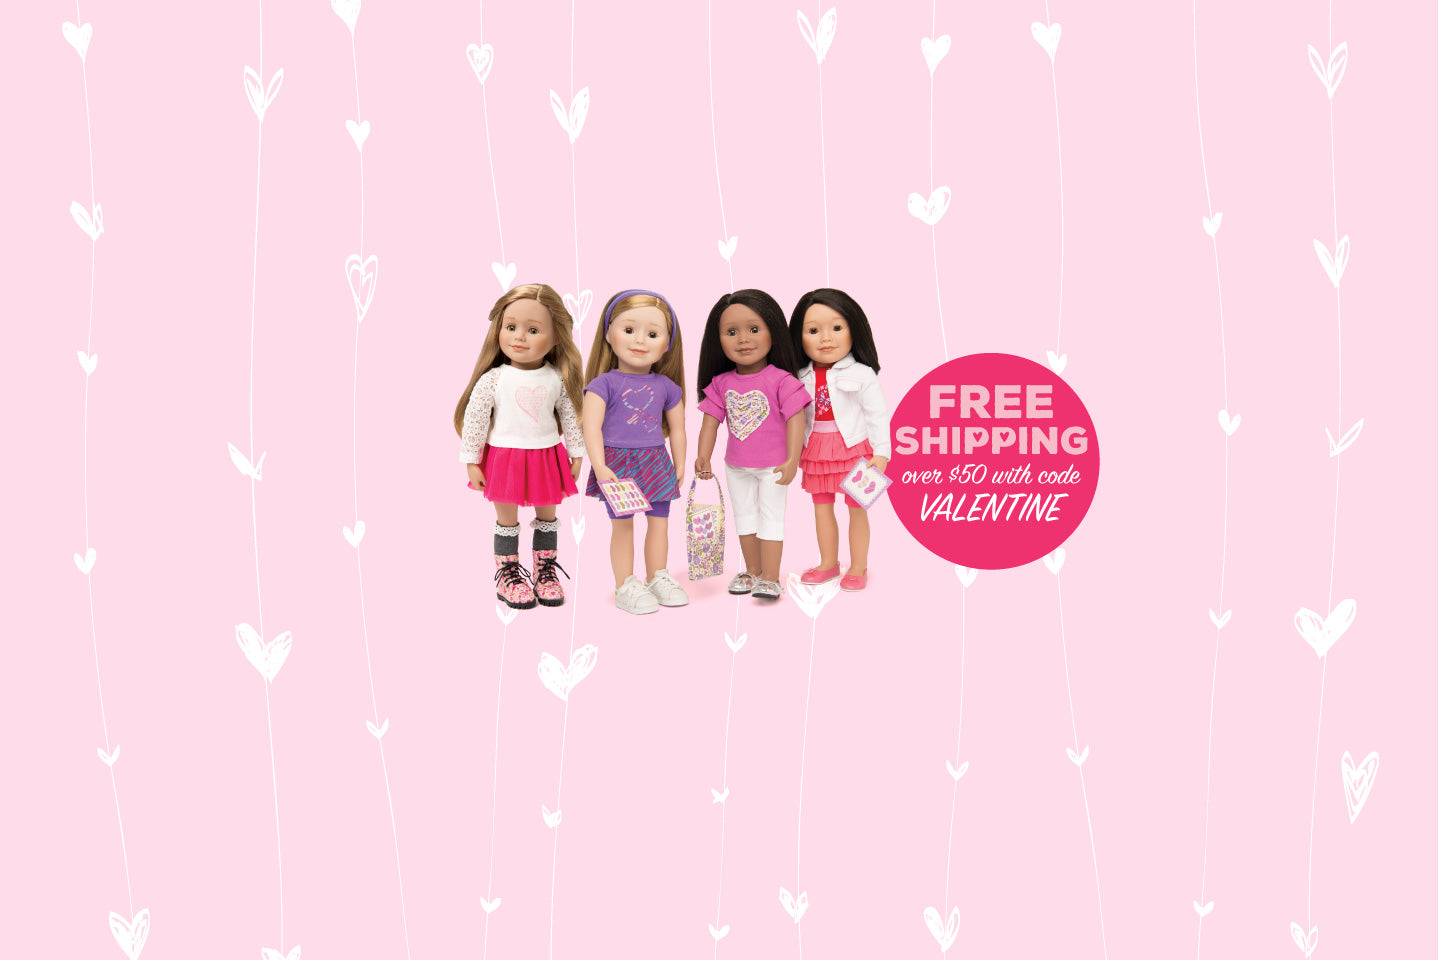 Everyone Loves a Free Ship Offer!